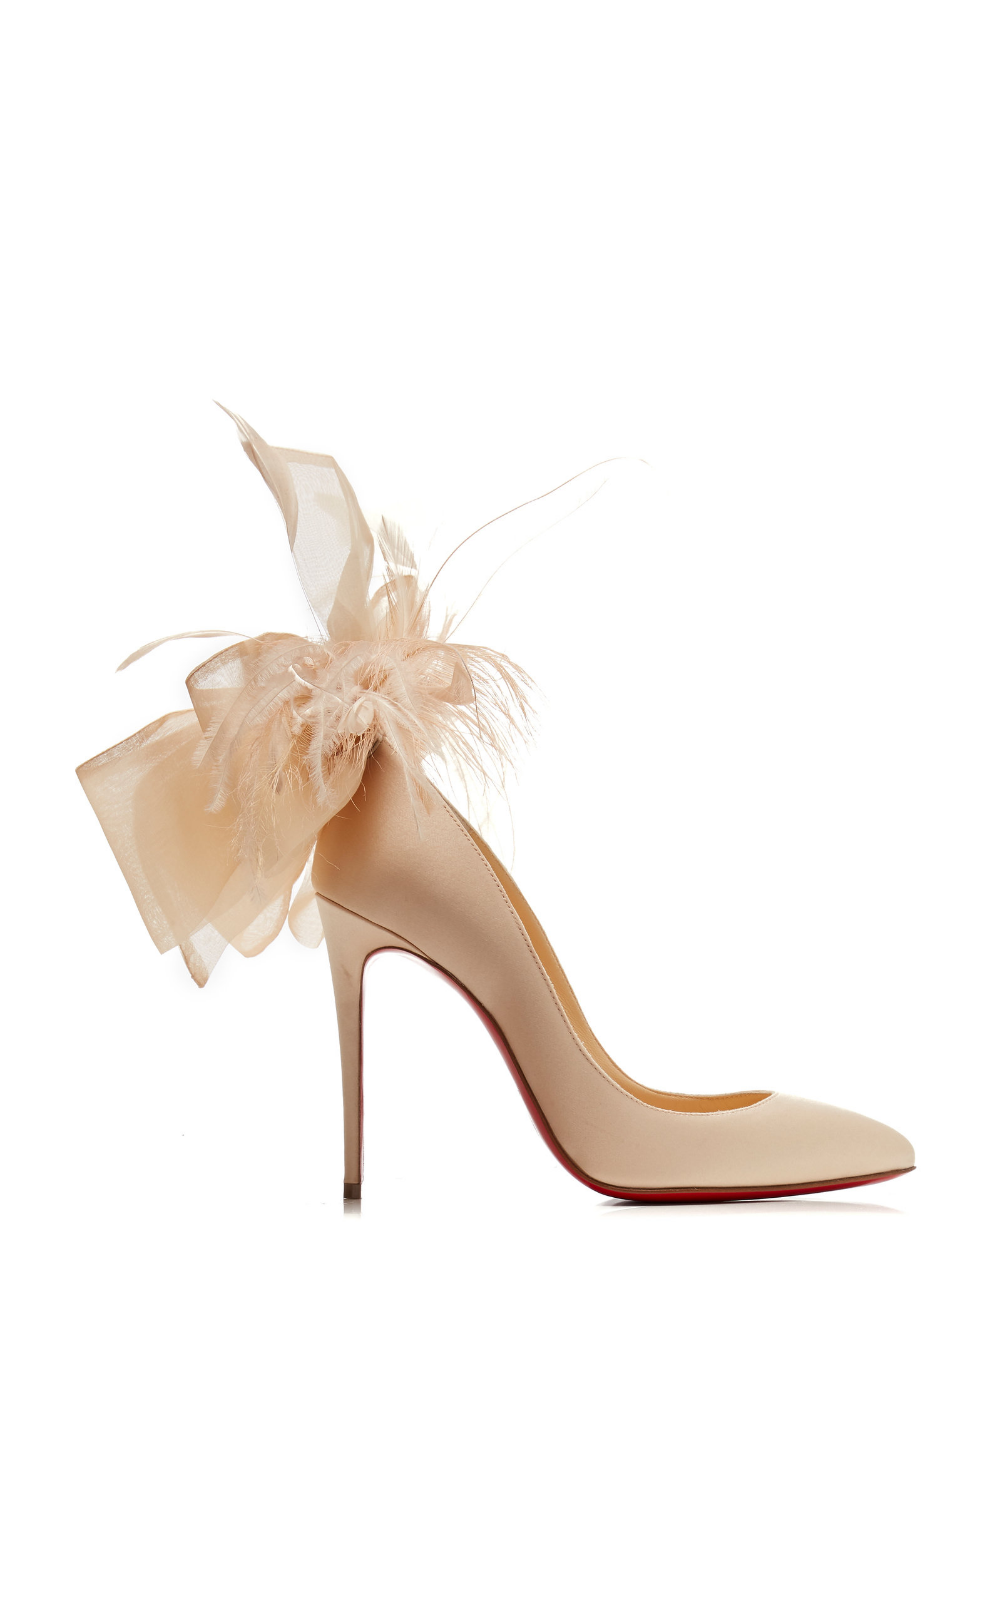 e1da9f3ab92 Christian Louboutin Exclusive Anemone Embellished Satin Pumps in ...